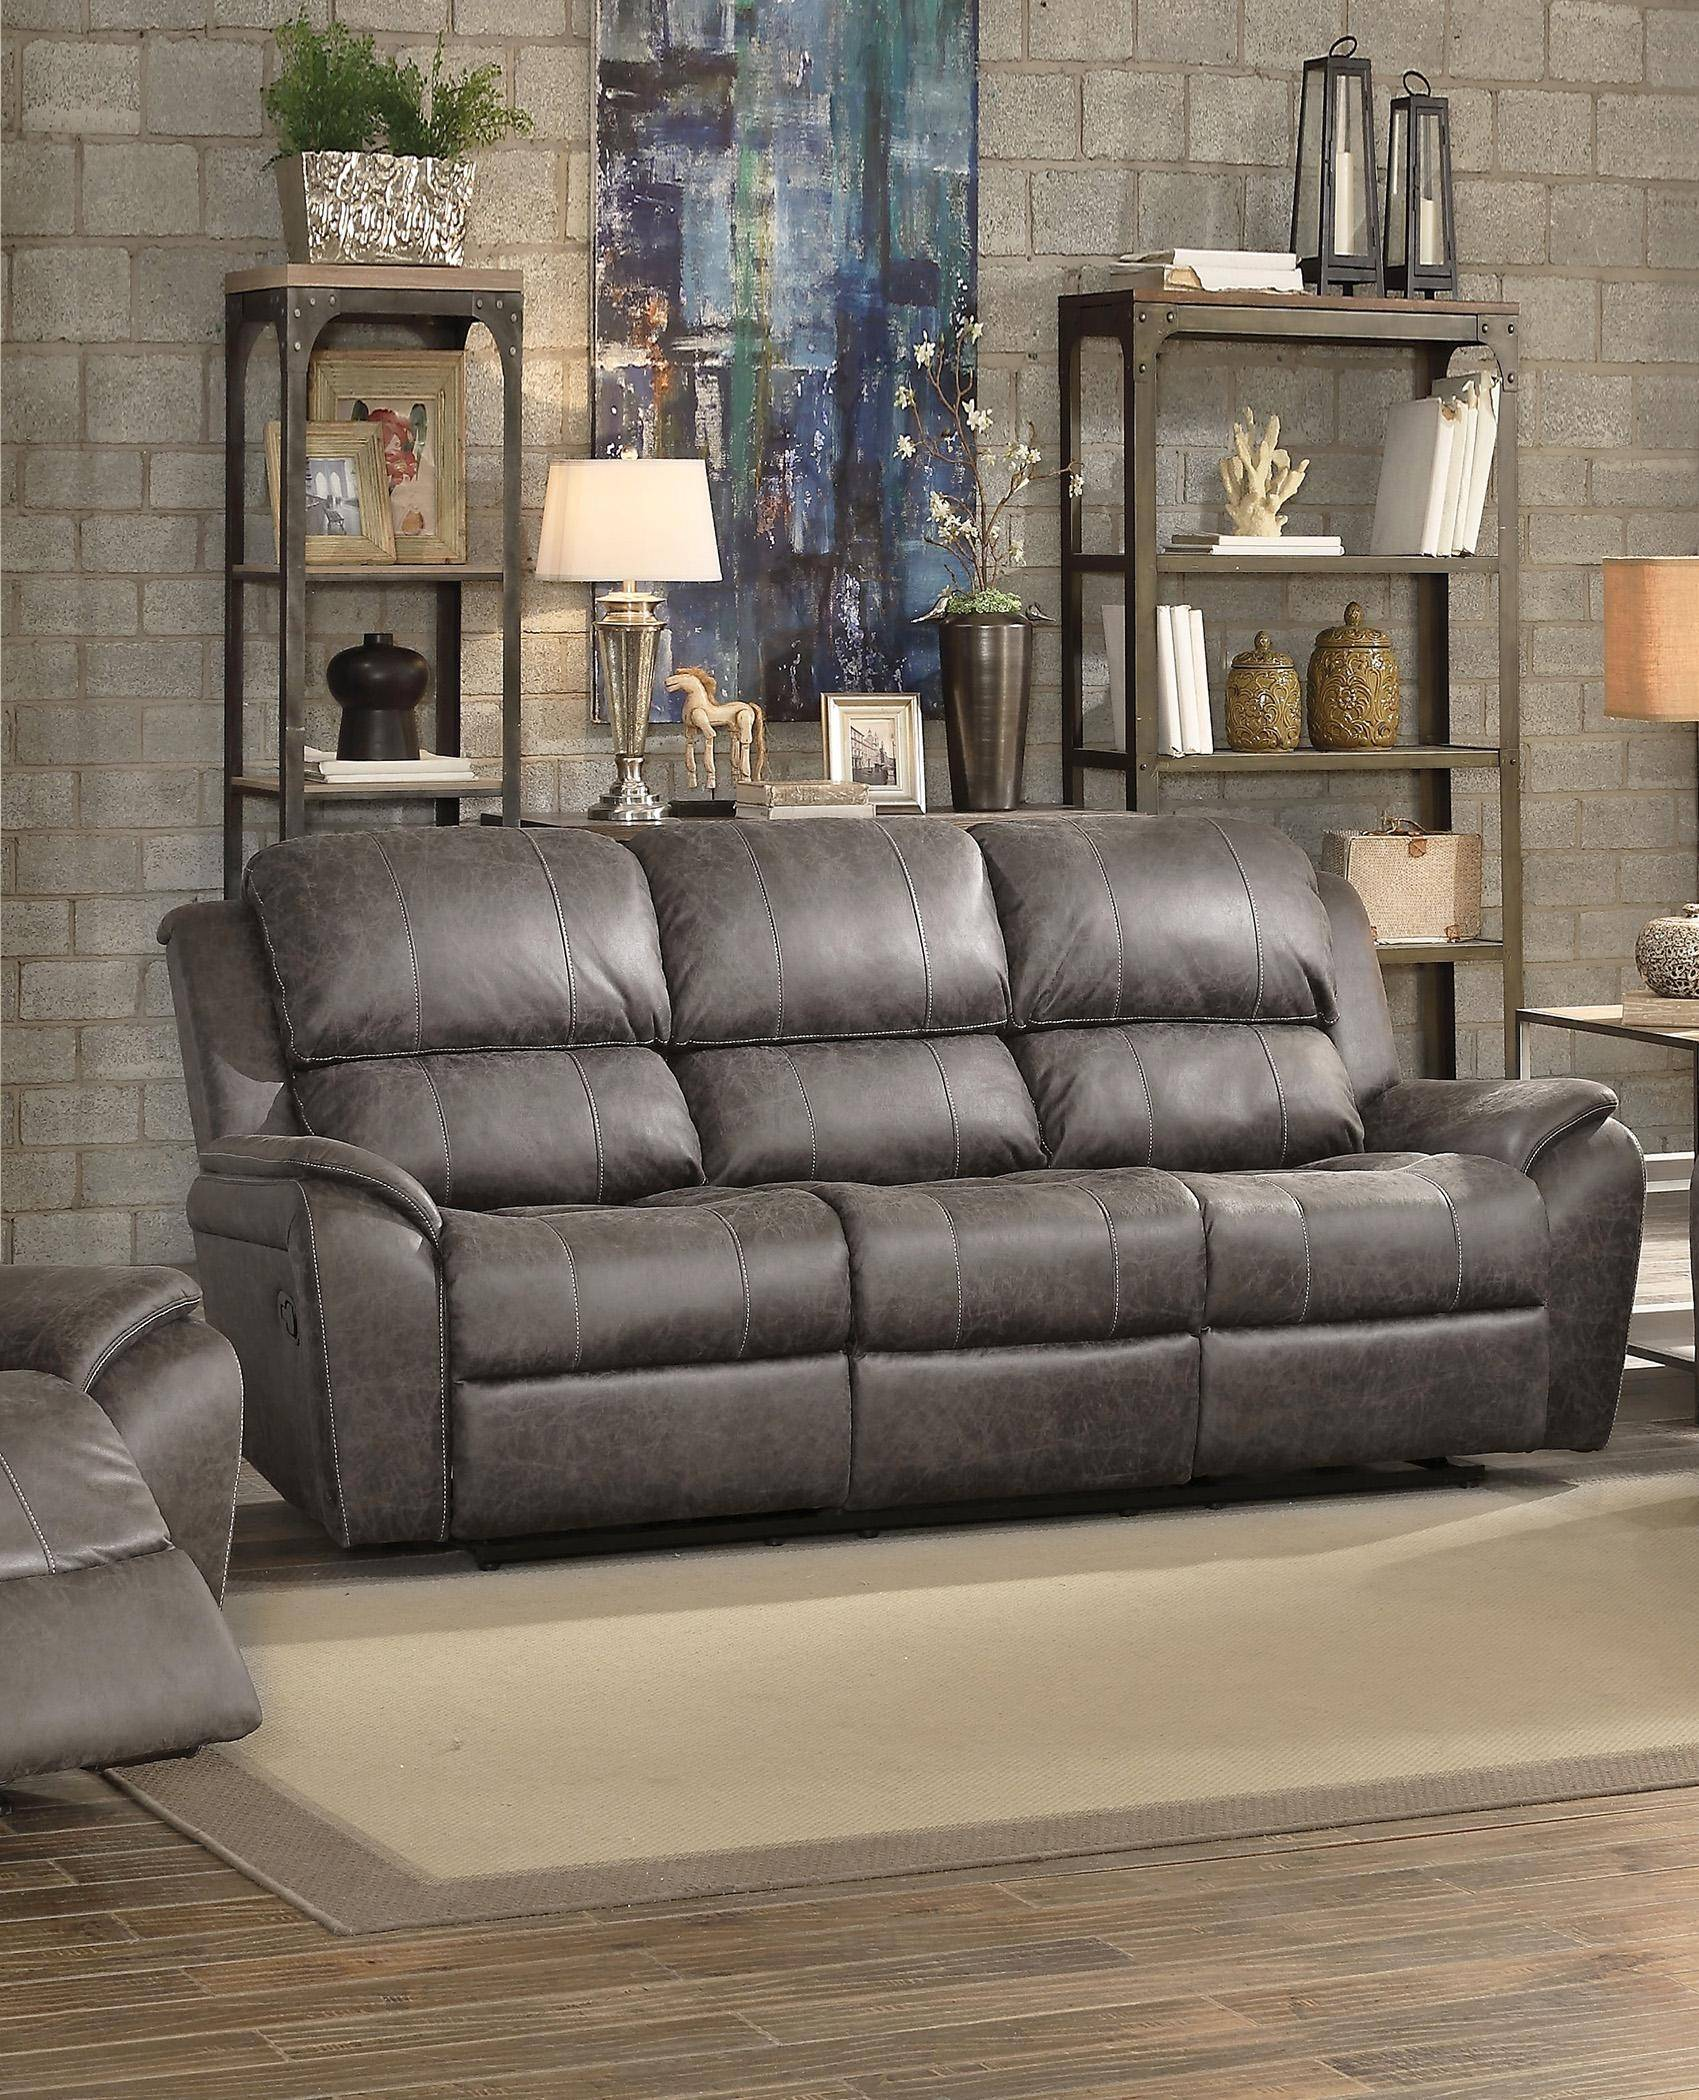 Gray Polished Microfiber Motion Sofa Set 3 Pcs Barnaby 52880 Acme Contemporary Barnaby 52880 Set 3